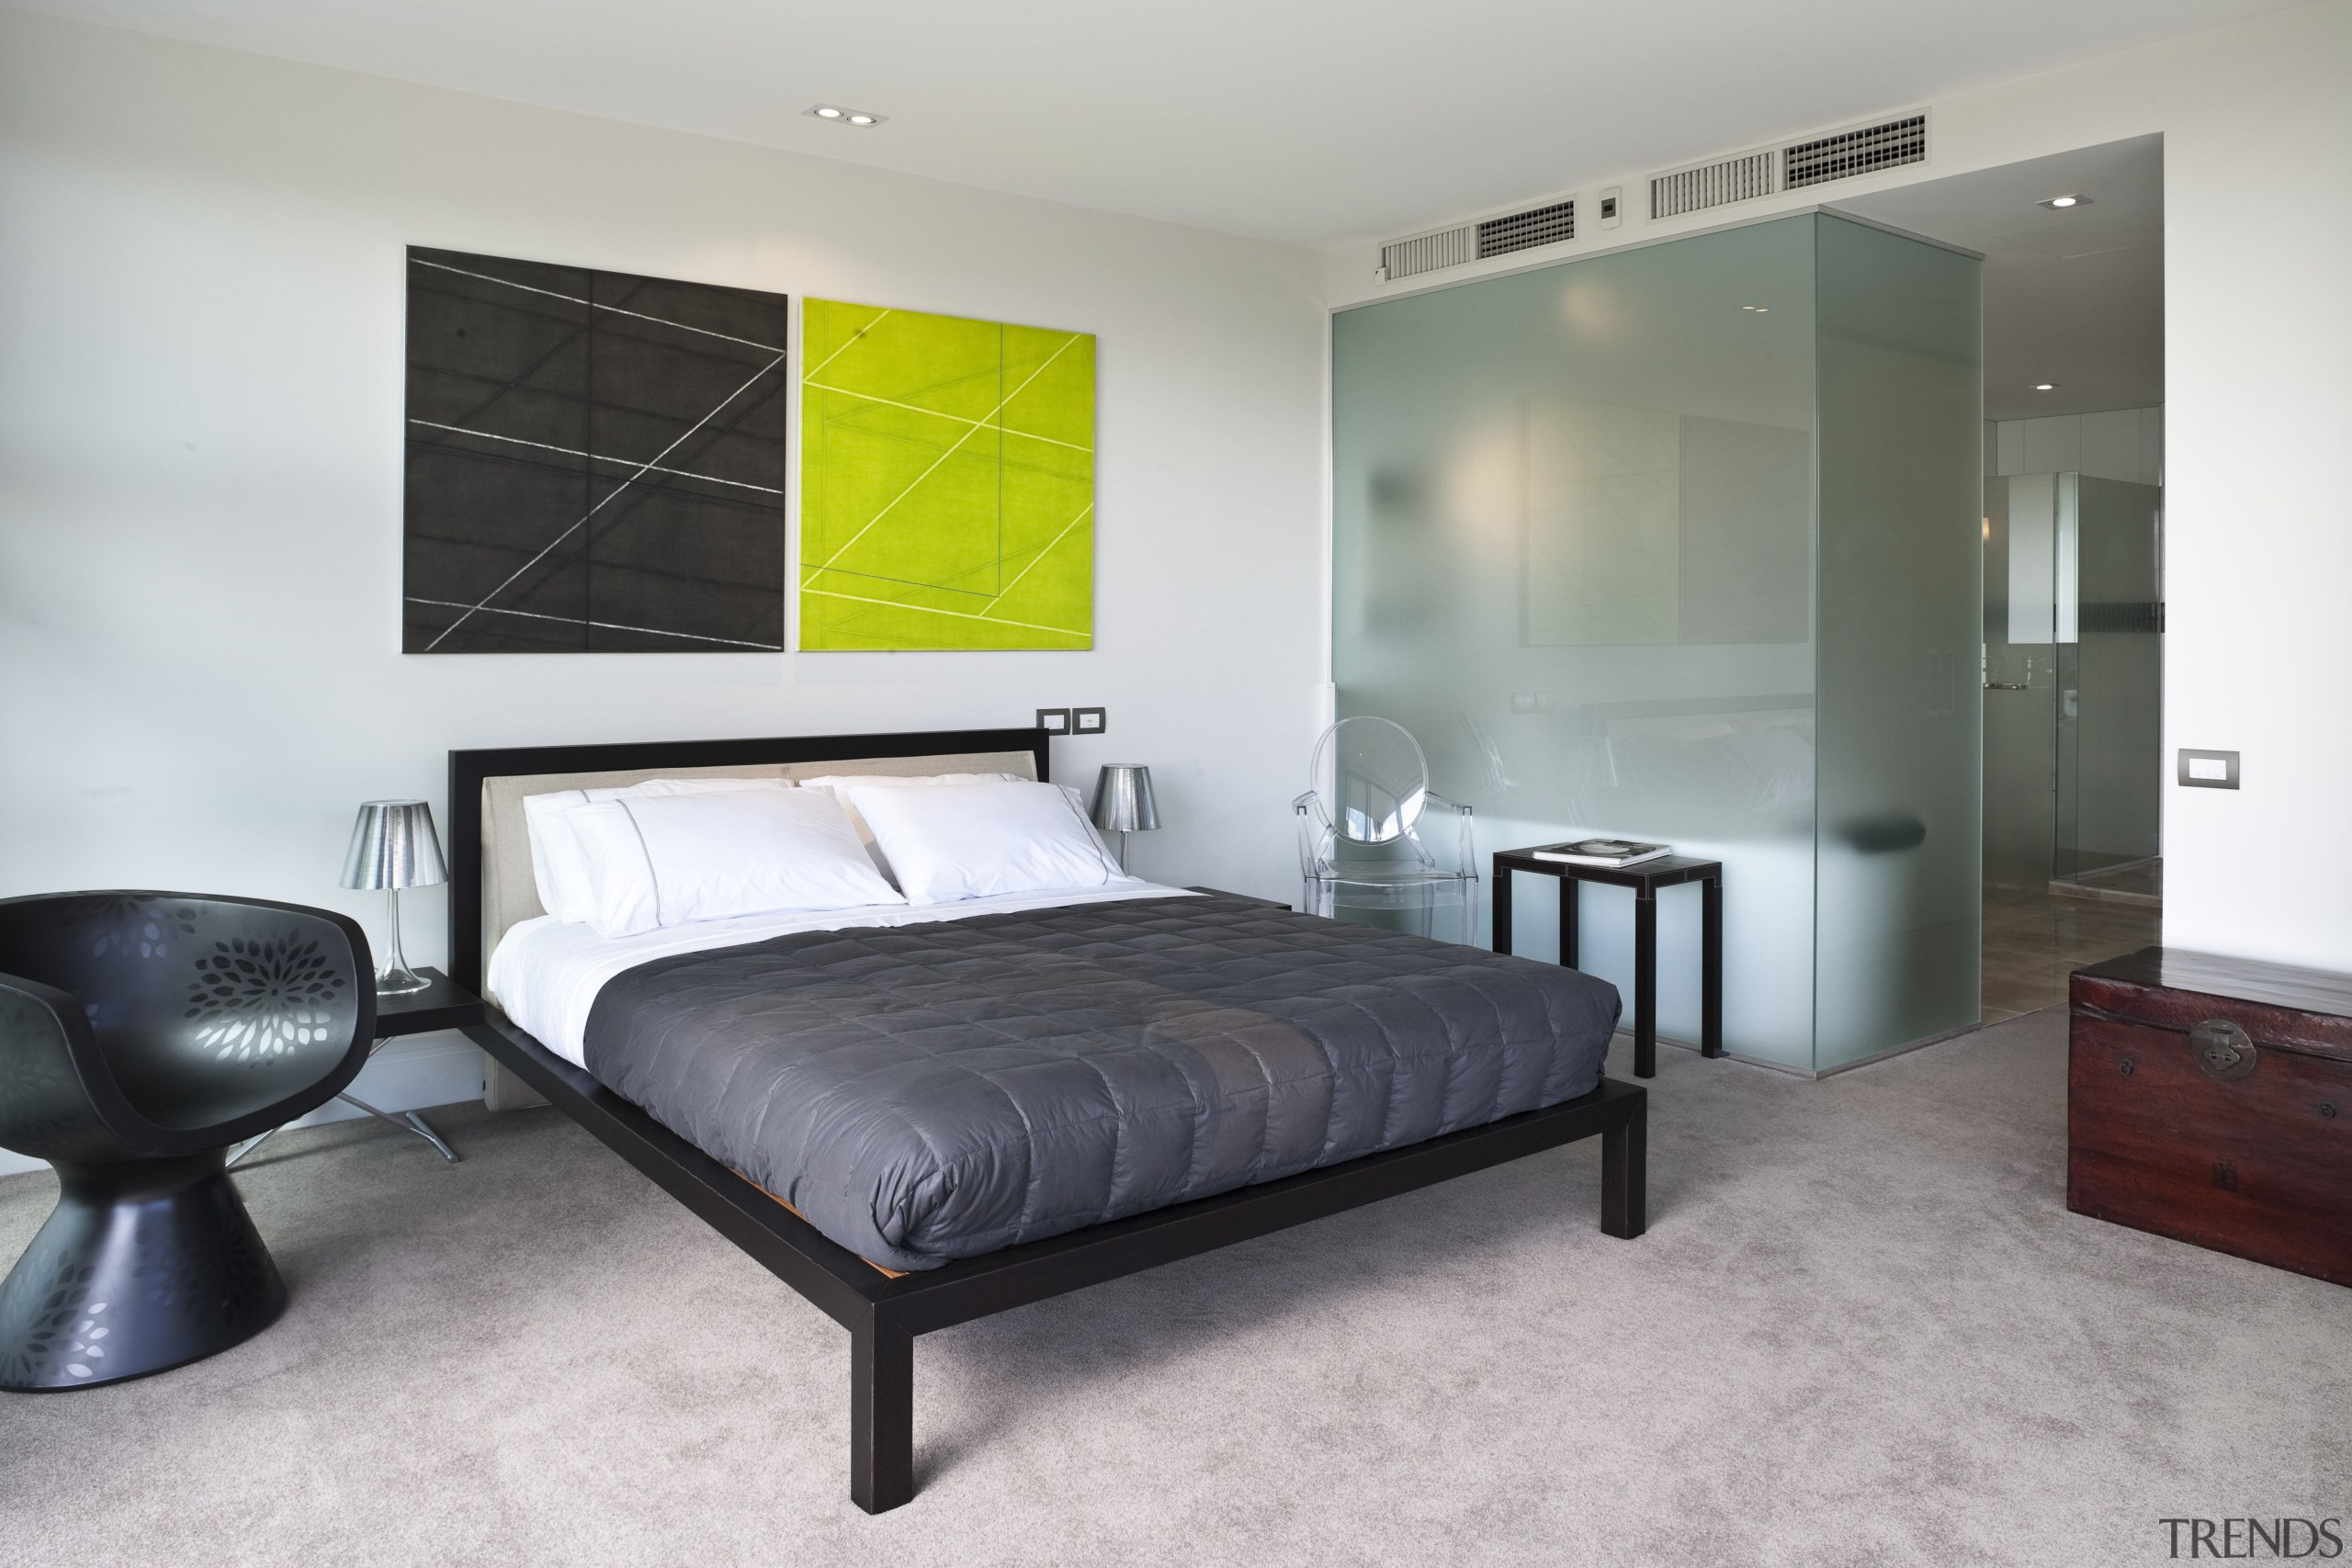 The bedroom and bathroom in the master suite bed frame, bedroom, floor, interior design, real estate, room, wall, gray